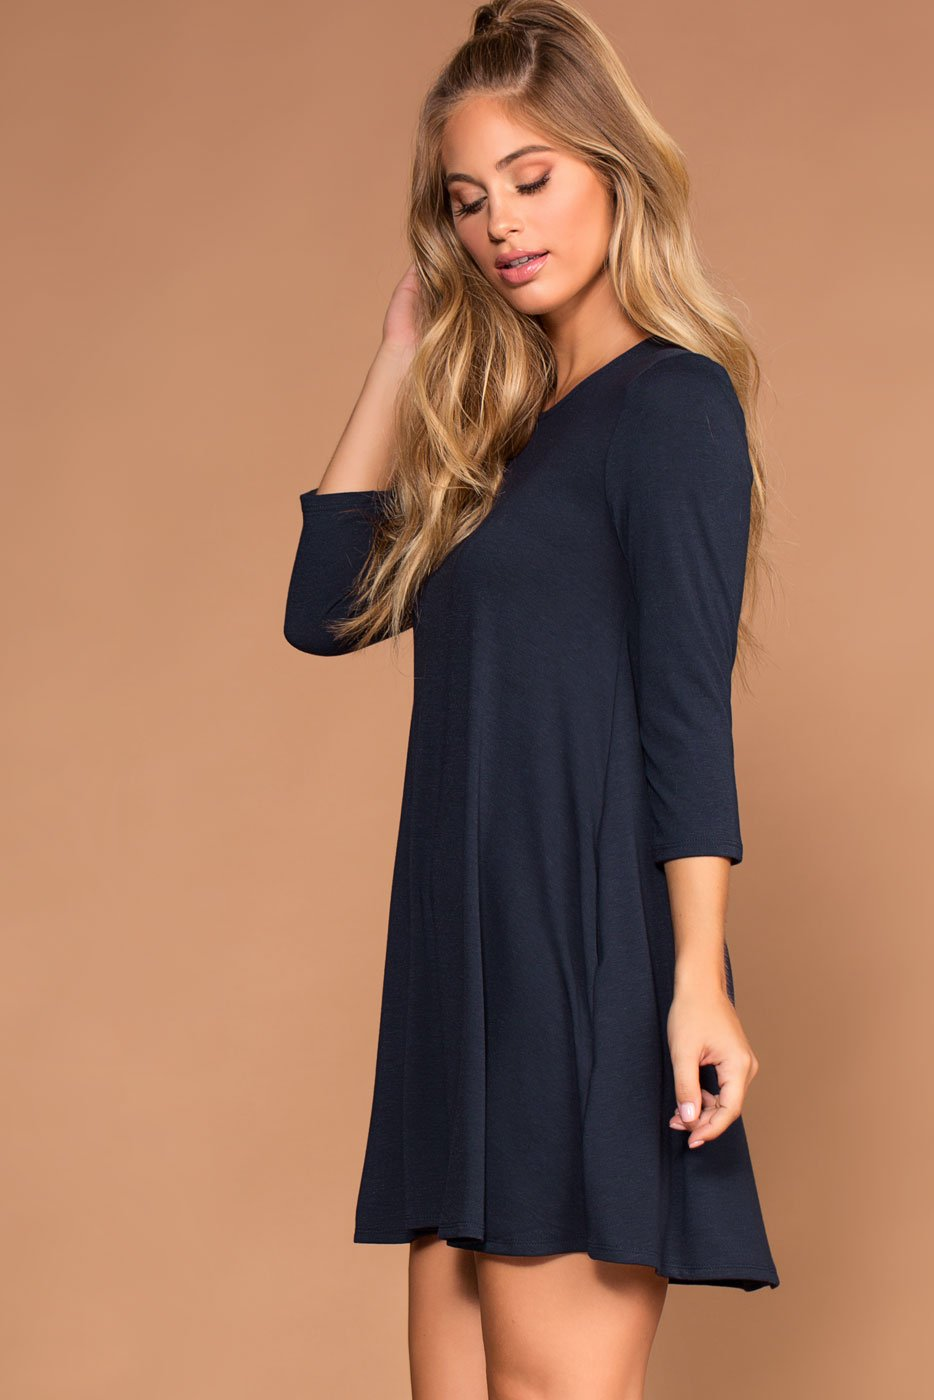 Dresses - Catching Leaves Swing Pocket Dress - Navy